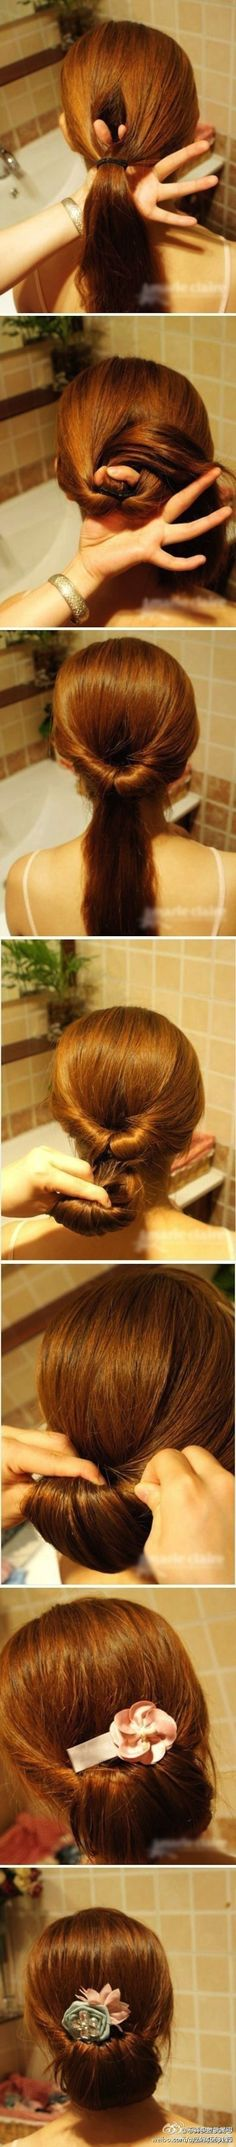 Expert Hair Care Tips For Any Age. Your hair might be your worst enemy, but it does not have to be! You can reclaim your hair with a little research and effort. First, identify your hair typ Five Minute Hairstyles, Cool Hairstyles, Hairstyle Ideas, Office Hairstyles, Summer Hairstyles, Easy Ponytail Hairstyles, Creative Hairstyles, Latest Hairstyles, Hairstyles 2018